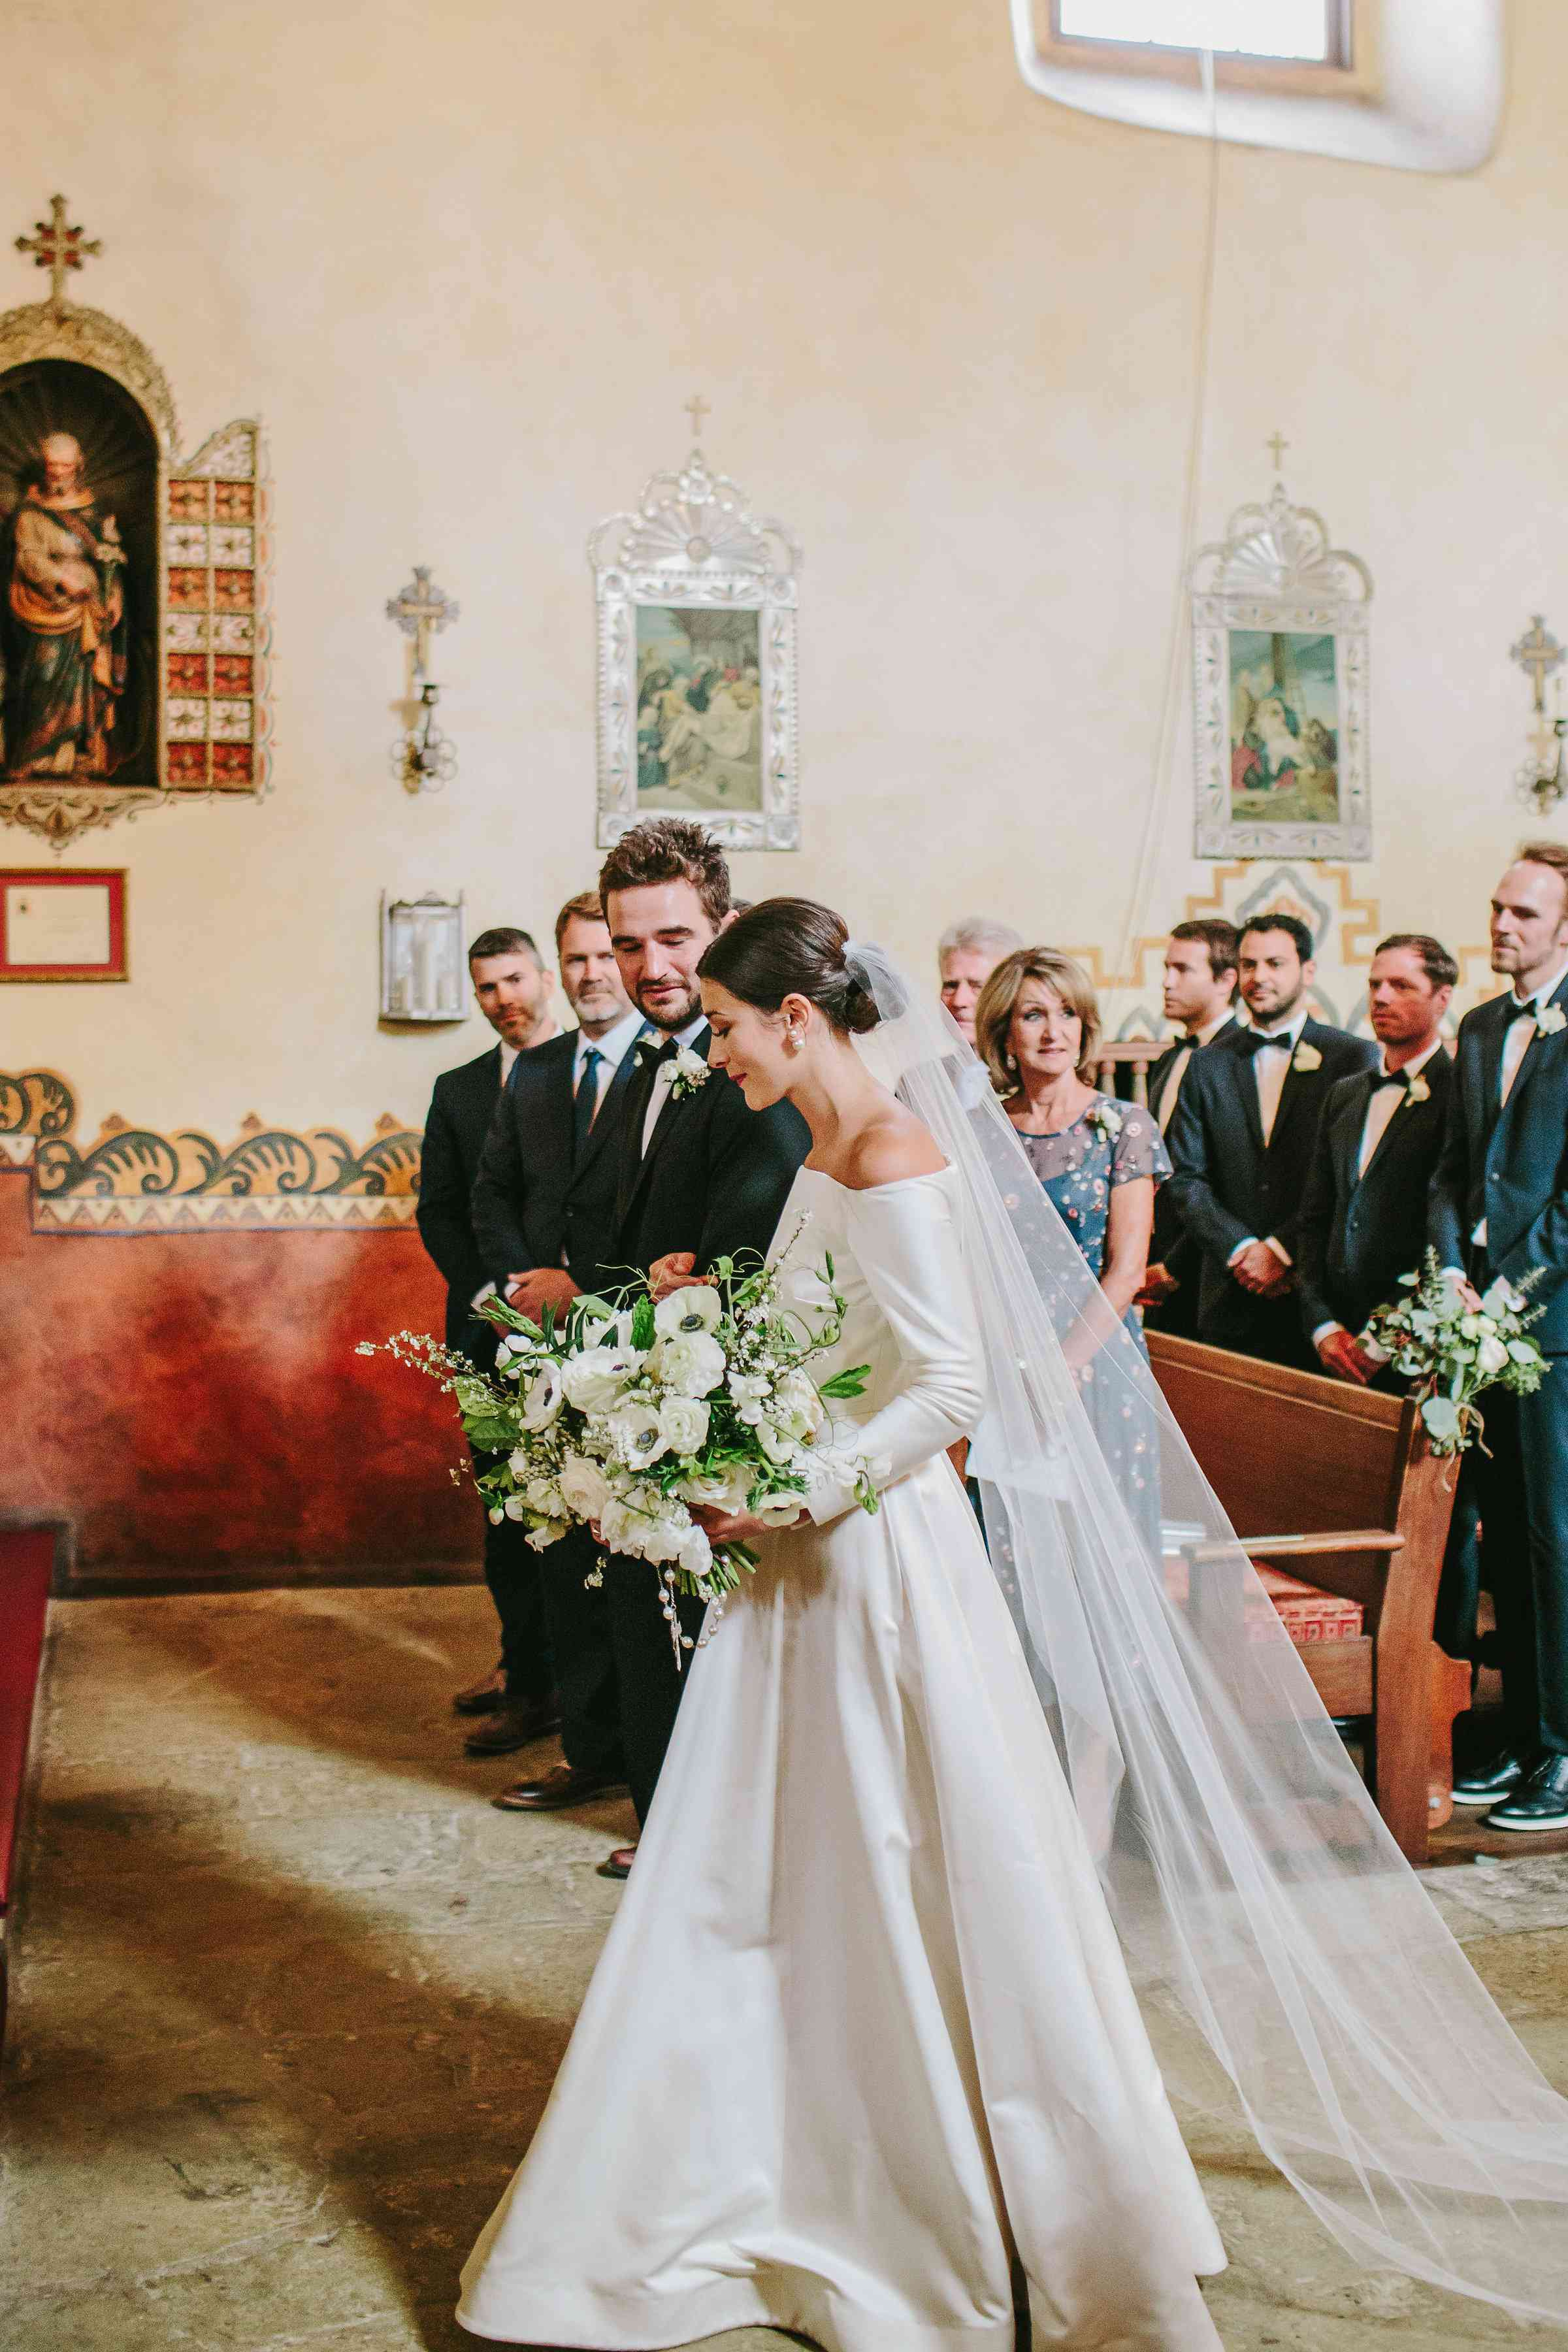 <p>bride being given away by brother</p><br><br>